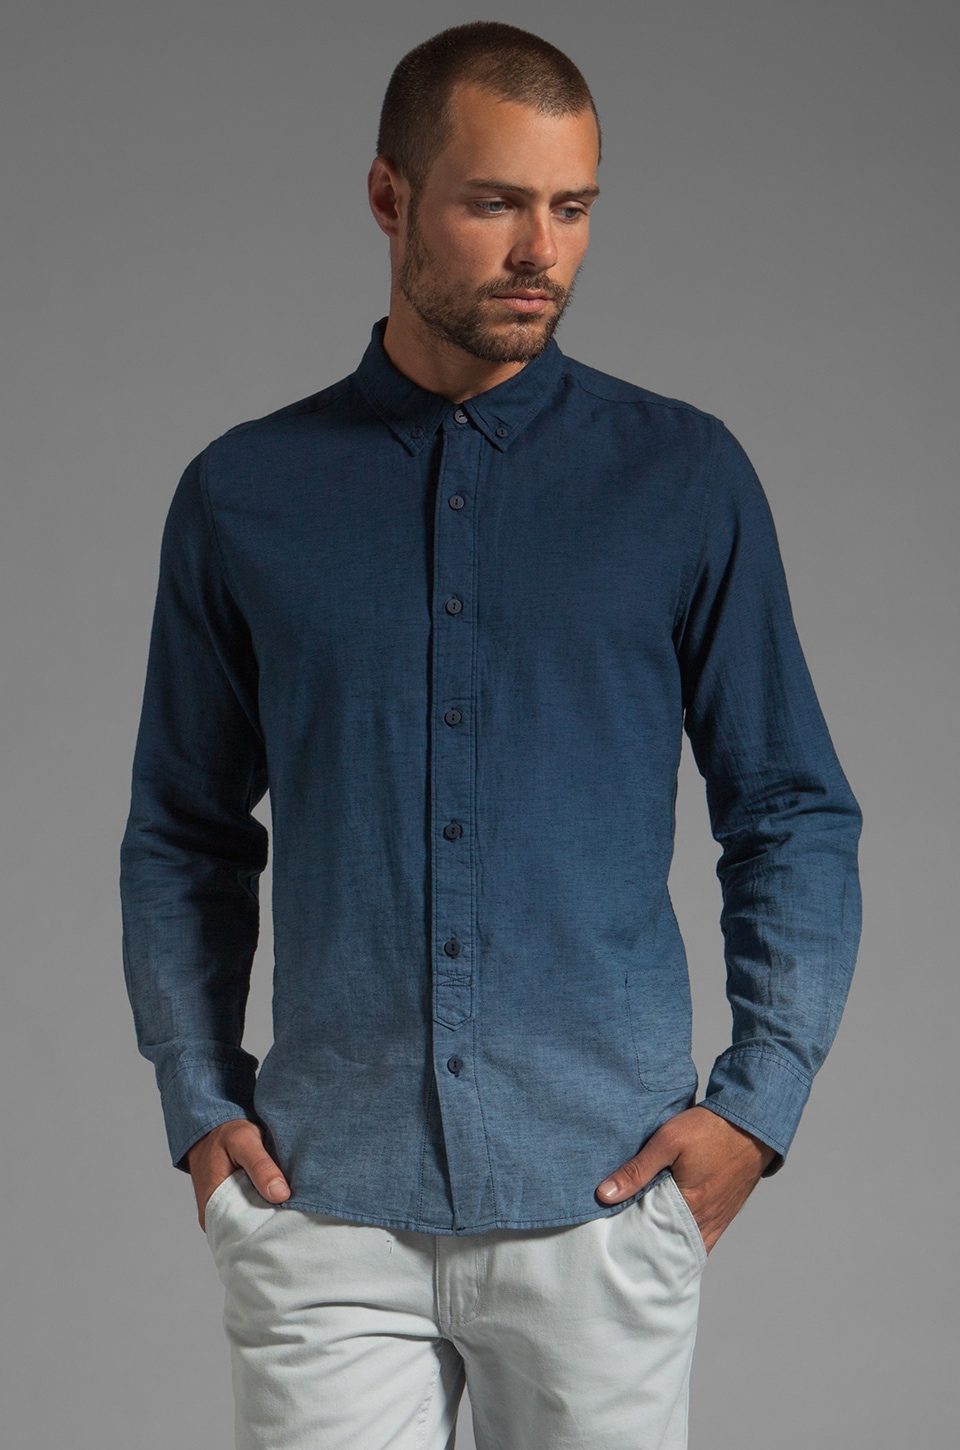 V.S.T.R Shades Shirt in Ensign Blue Dip-Dye